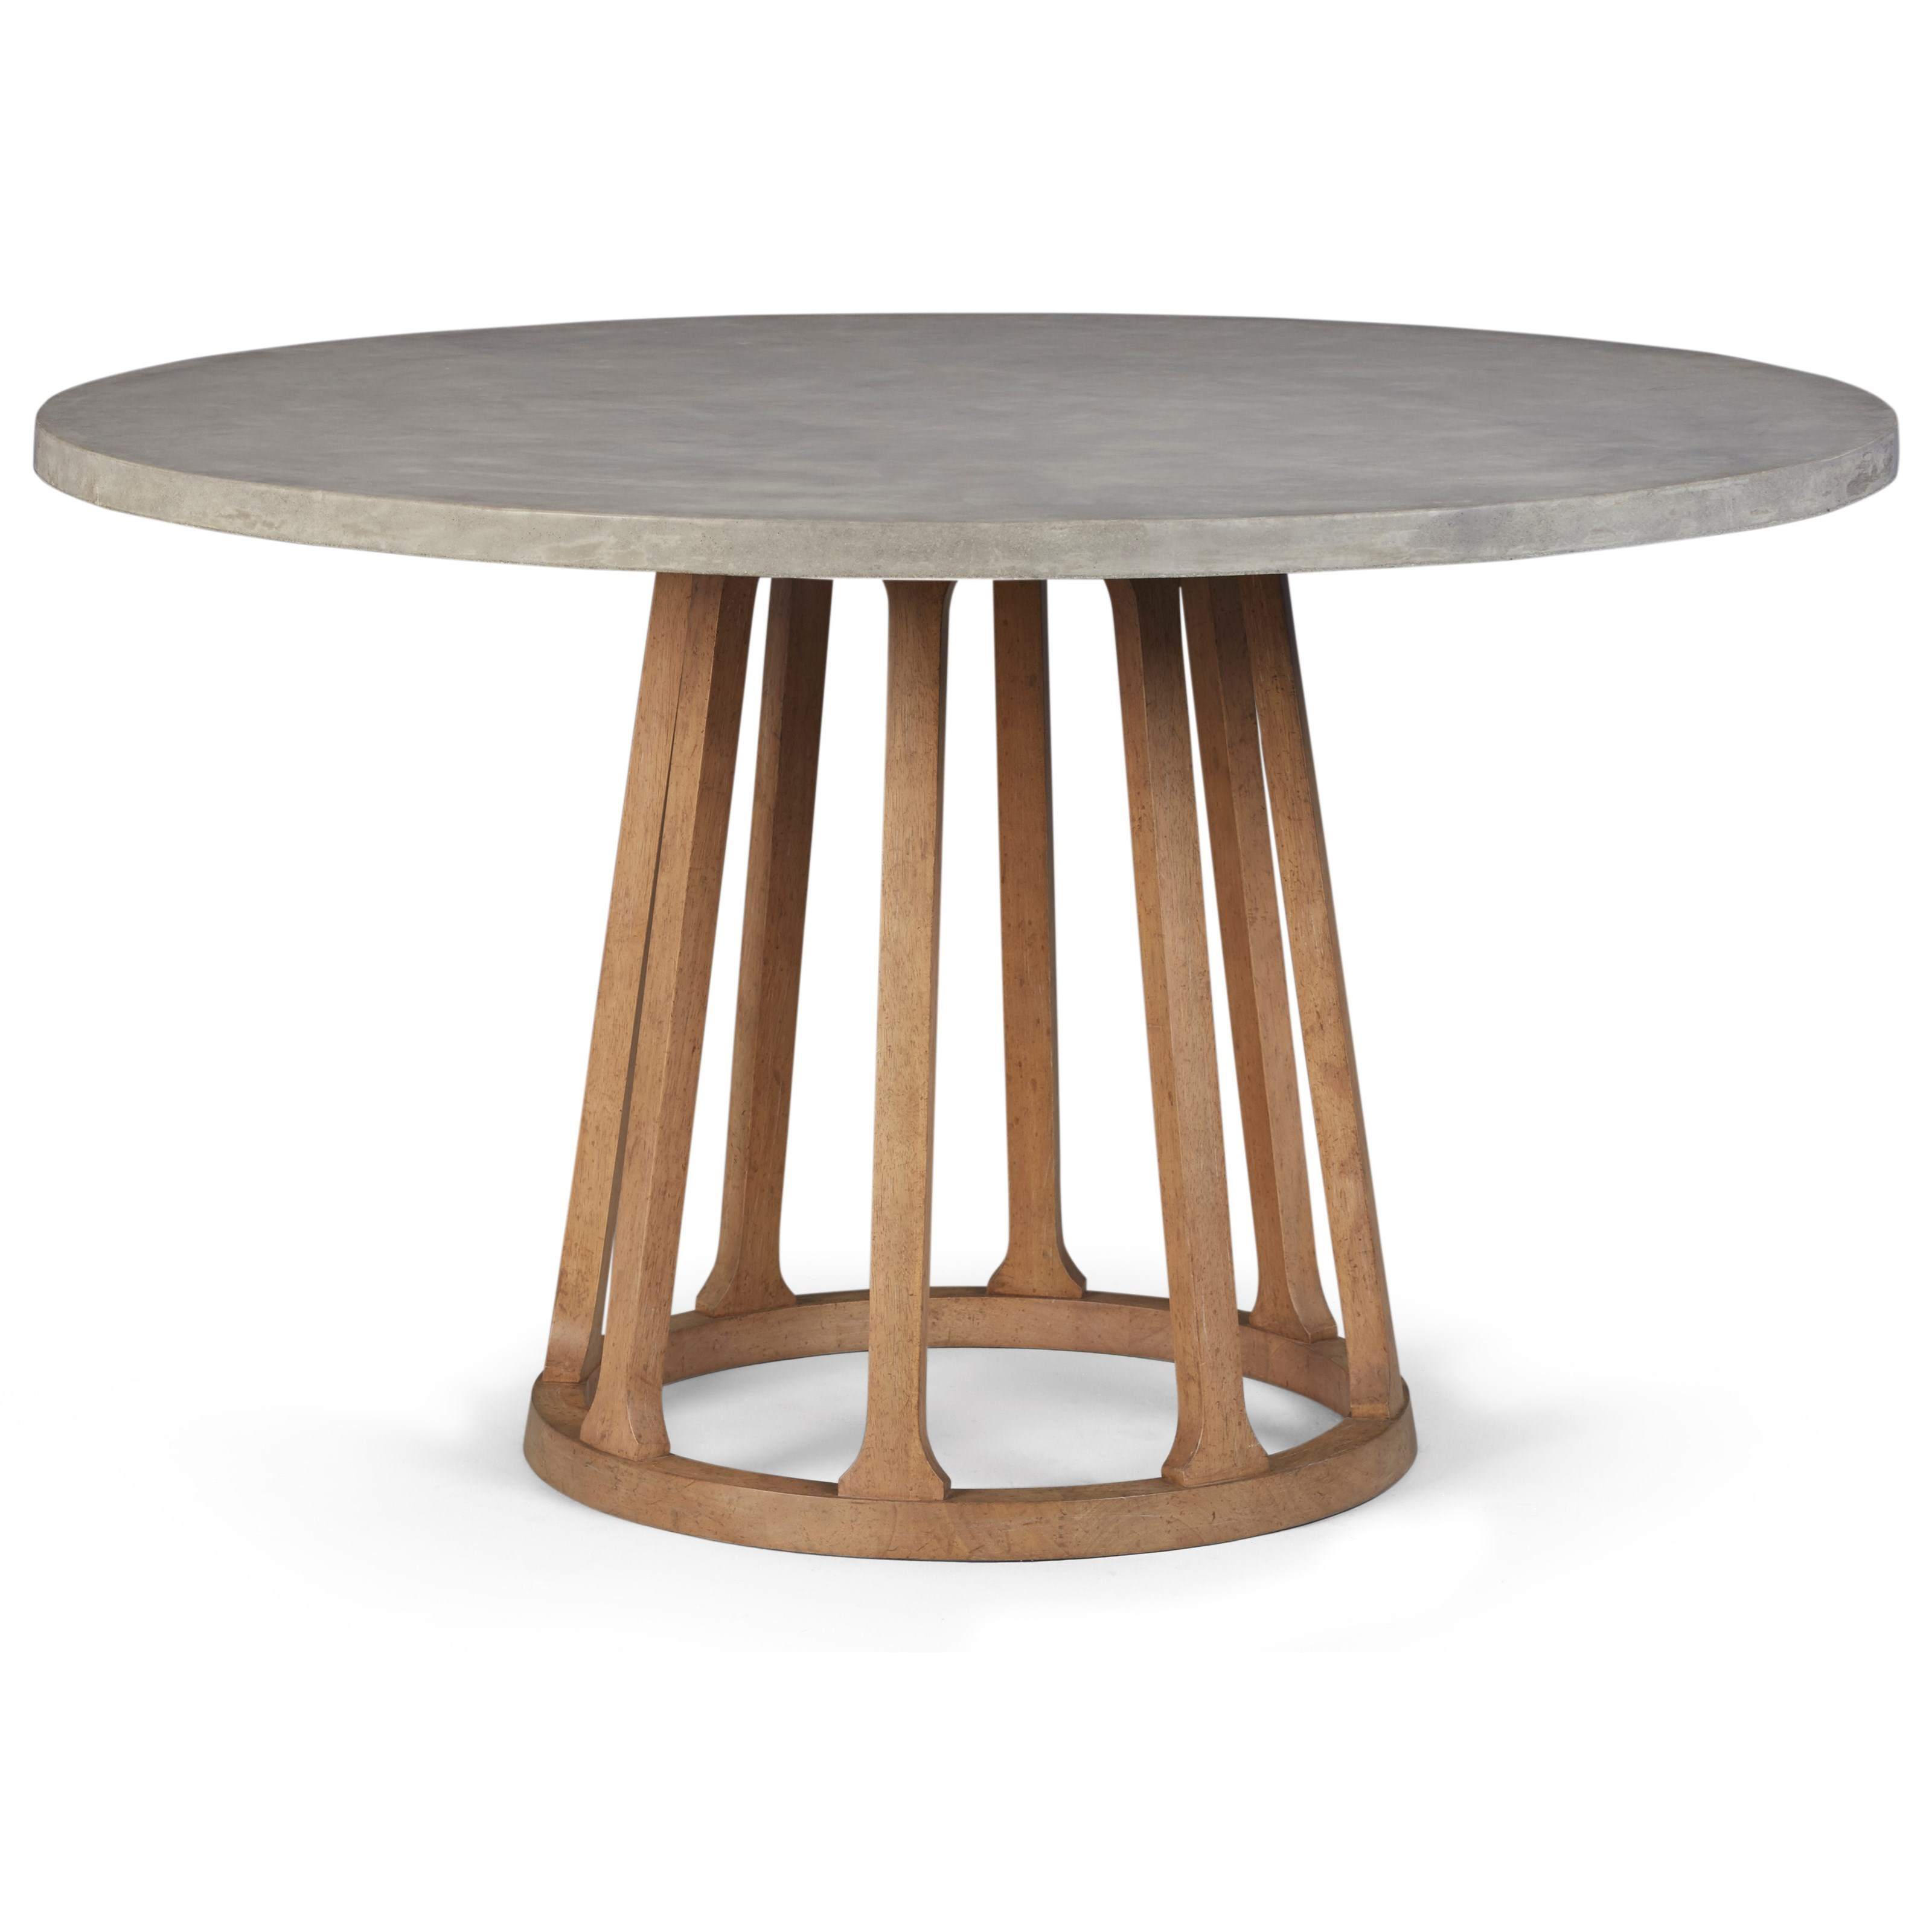 A R T Furniture Epicenters Austin Fountainwood Dining Table